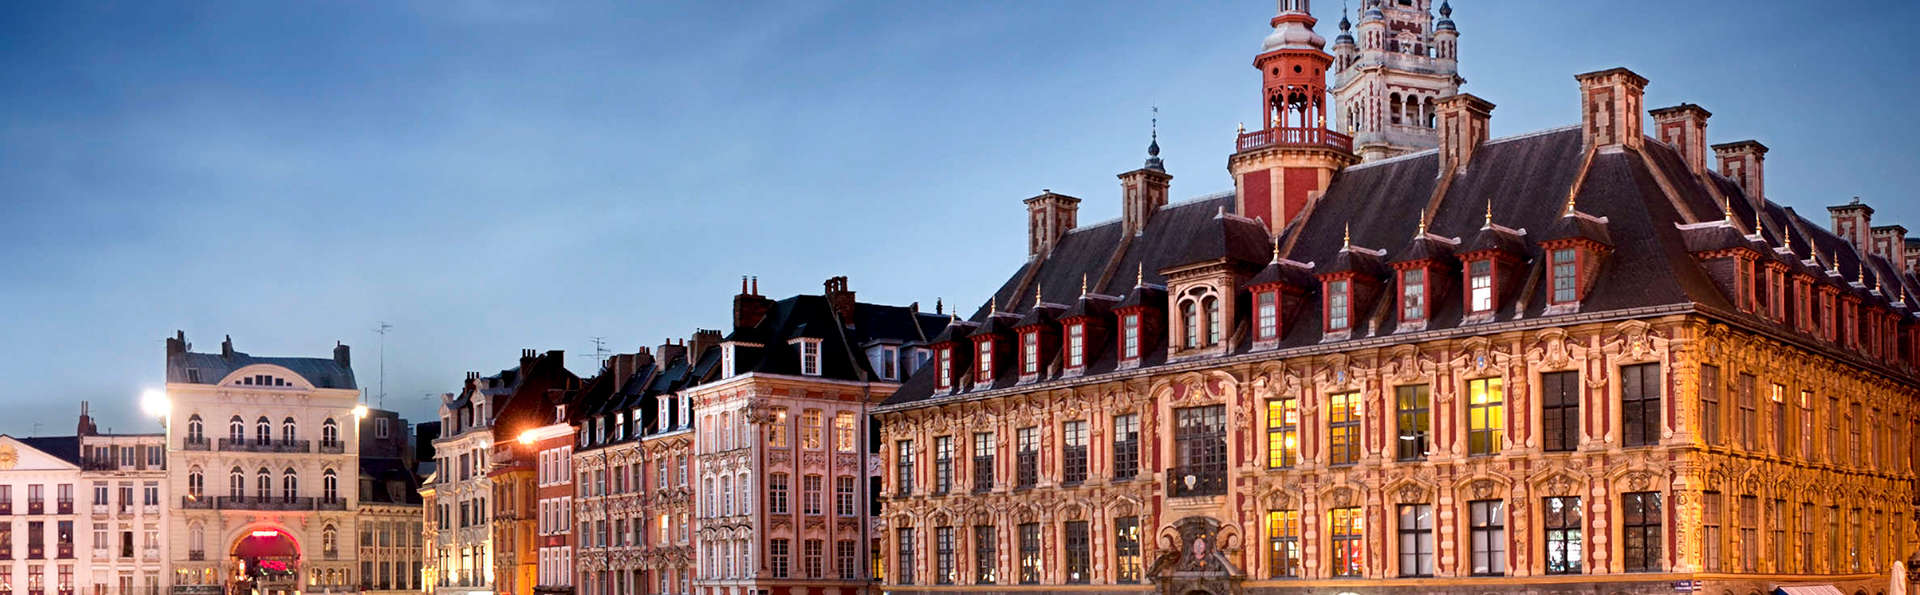 Week end citytrip lille avec travaux dans l 39 tablissement for Lille capitale des flandres